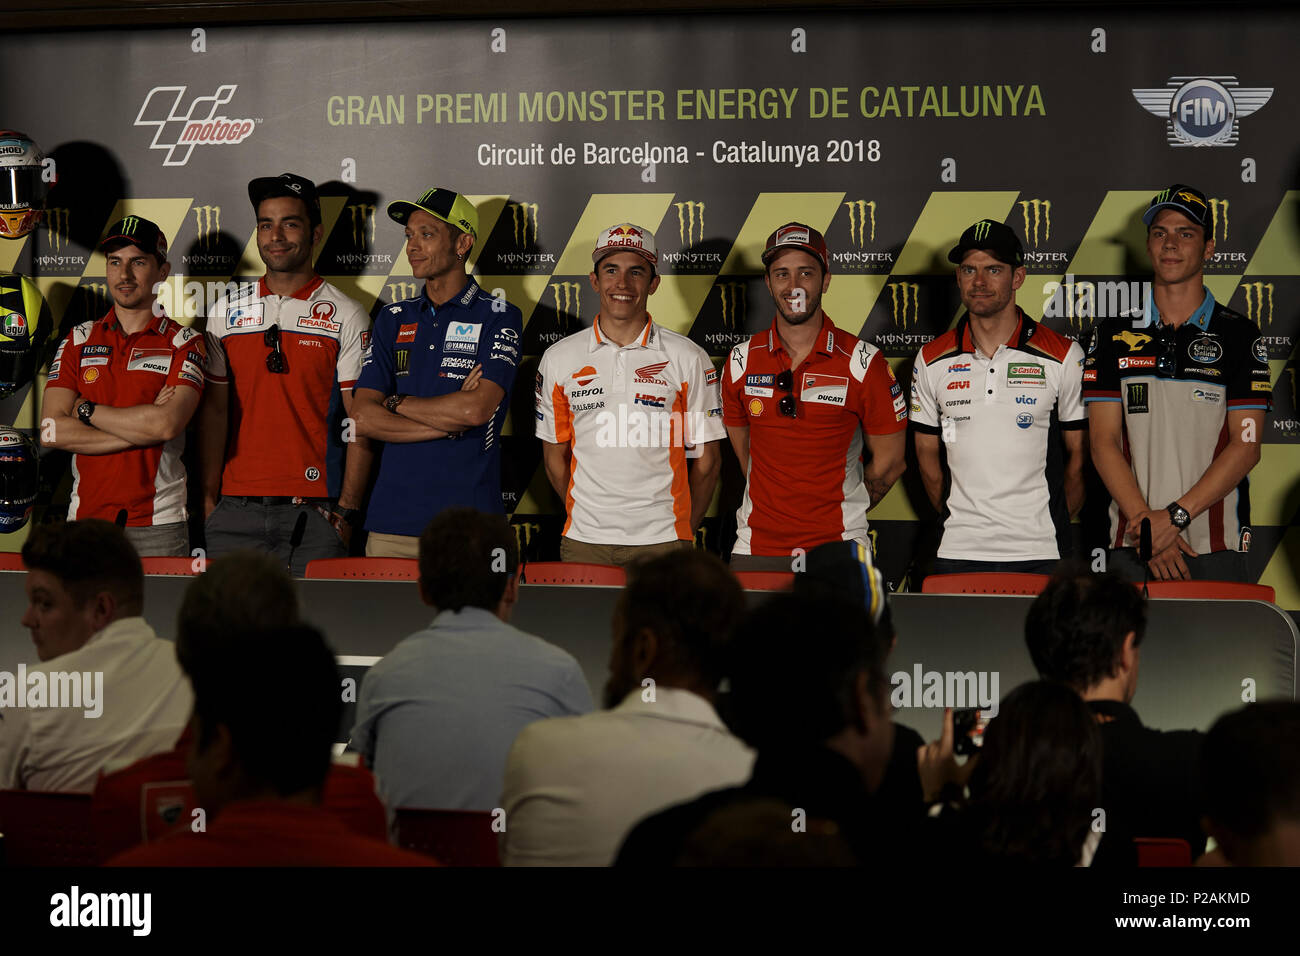 (L-R) Jorge Lorenzo, Danilo Petrucci, Valentino Rossi, Marc Marquez, Andrea Dovizioso, Cal Crutchlow, Joan Mir during the press conference before of the Gran Premi Monster Energy de Catalunya, Circuit of Catalunya, Montmelo, Spain.On 14 june of 2018. - Stock Image